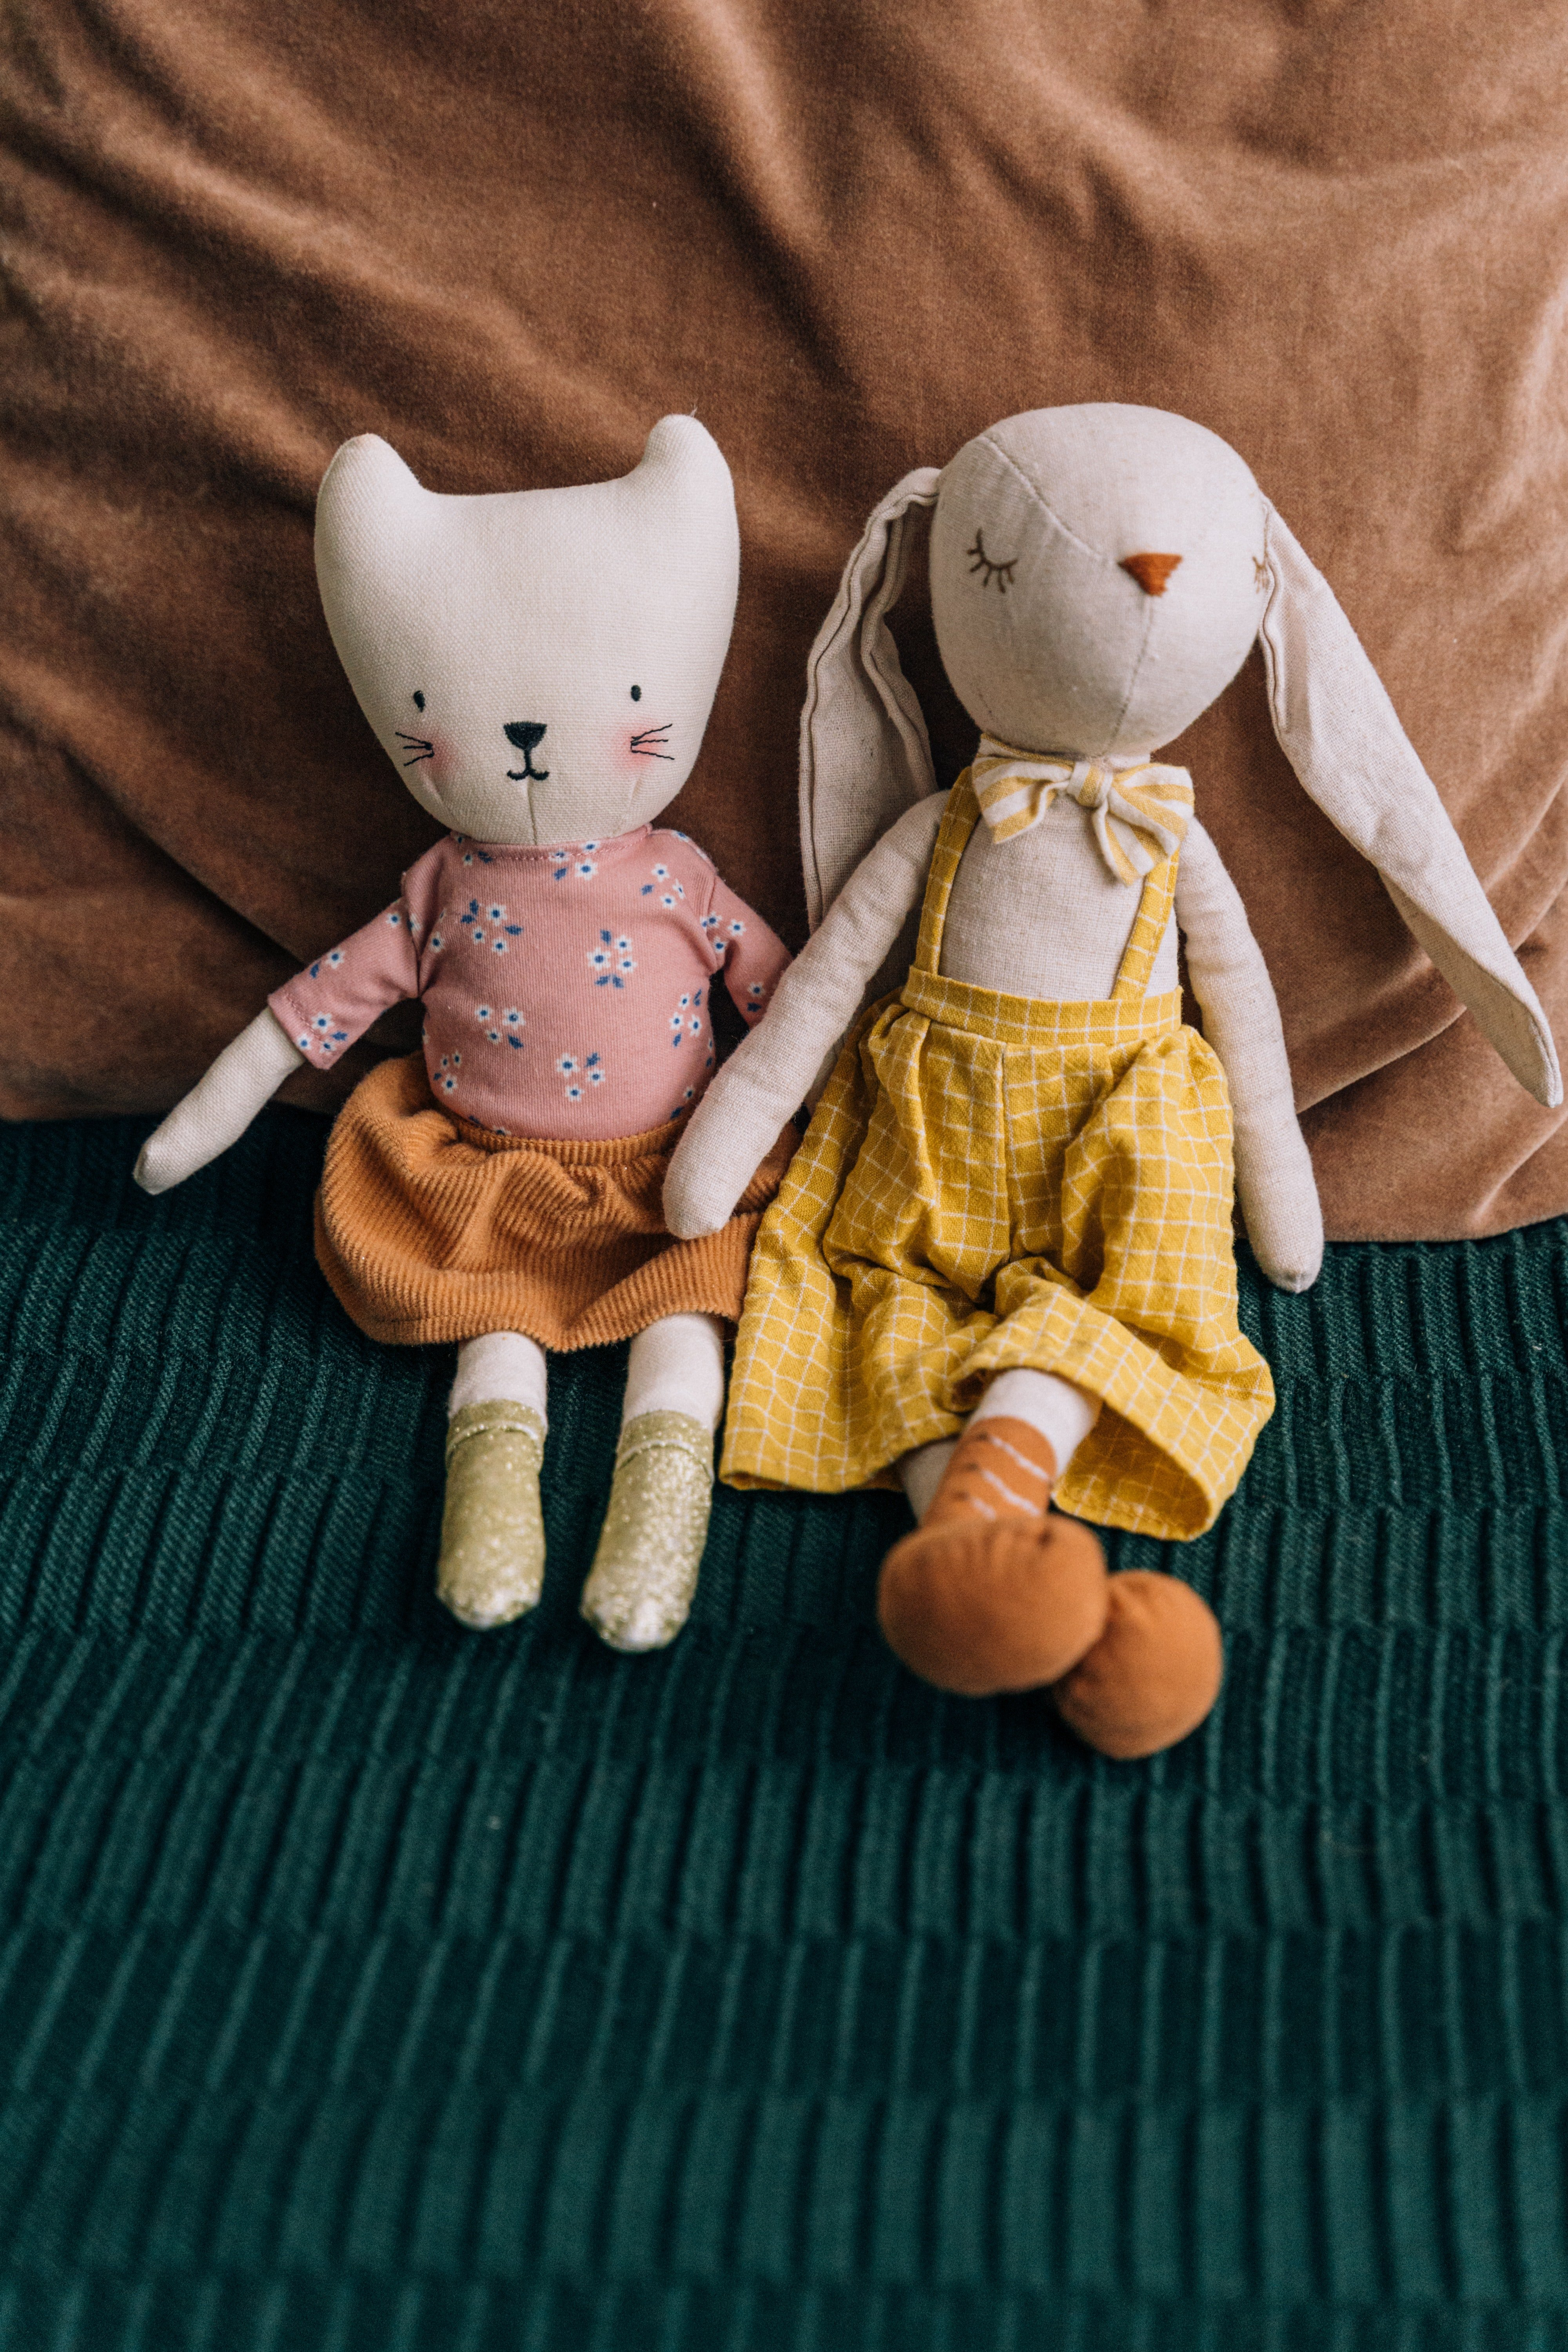 I used to own dolls like that, my favorite is a rabbit called Connie   Source: Pexels